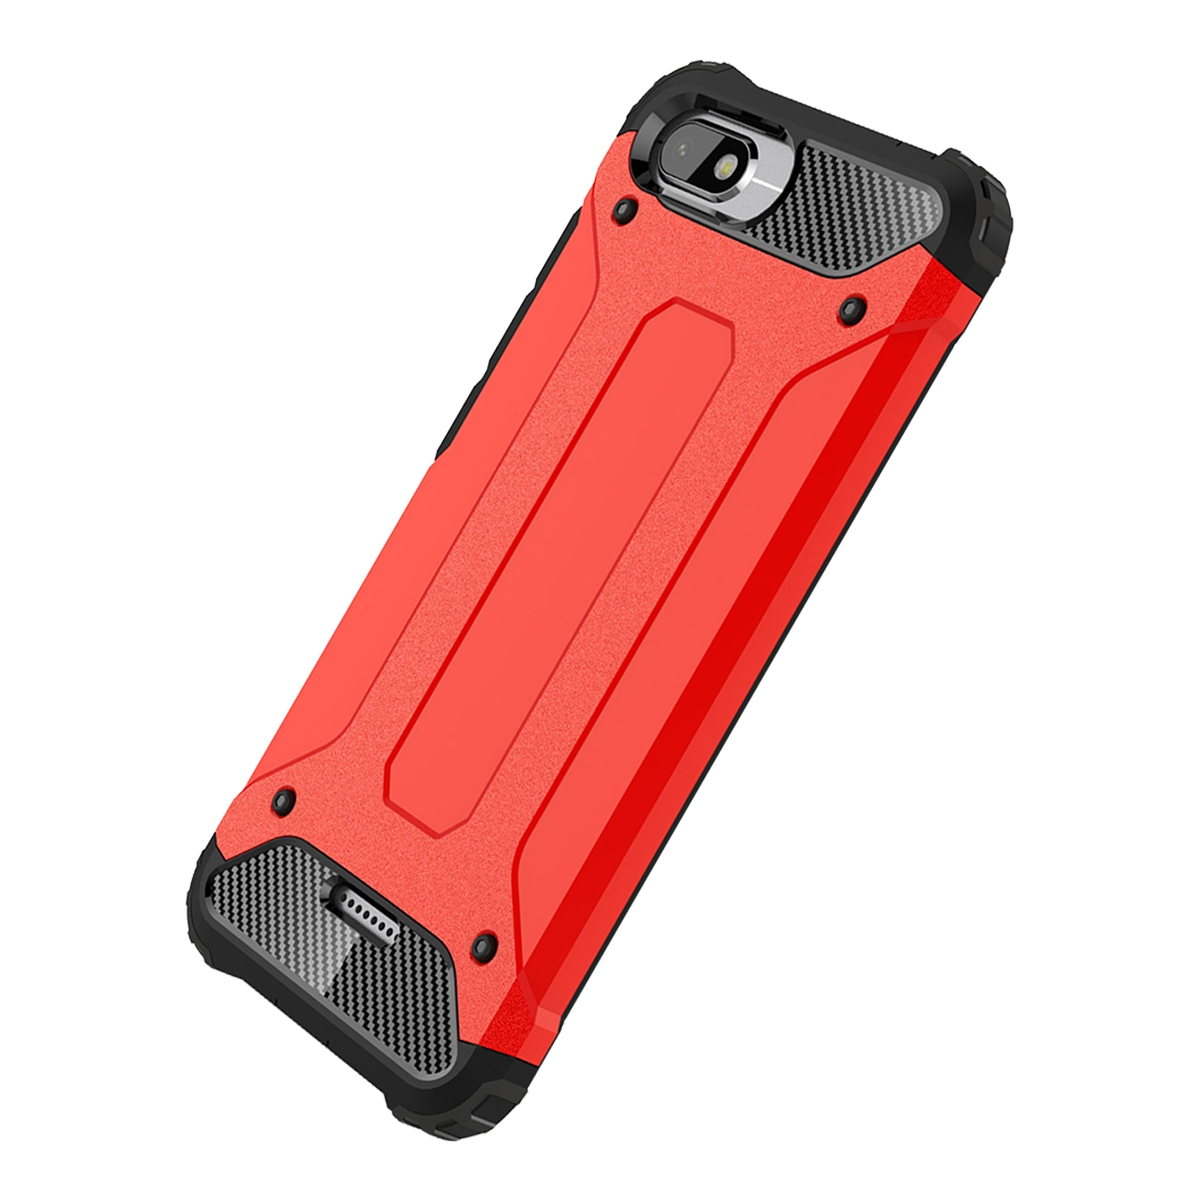 Xiaomi Redmi 6A Case, Mooncase Hybrid Armor Case Soft Silicone & Hard Plastic Defender Shockproof Protective Cover Shell for Xiaomi Redmi 6A Red - Walmart. ...